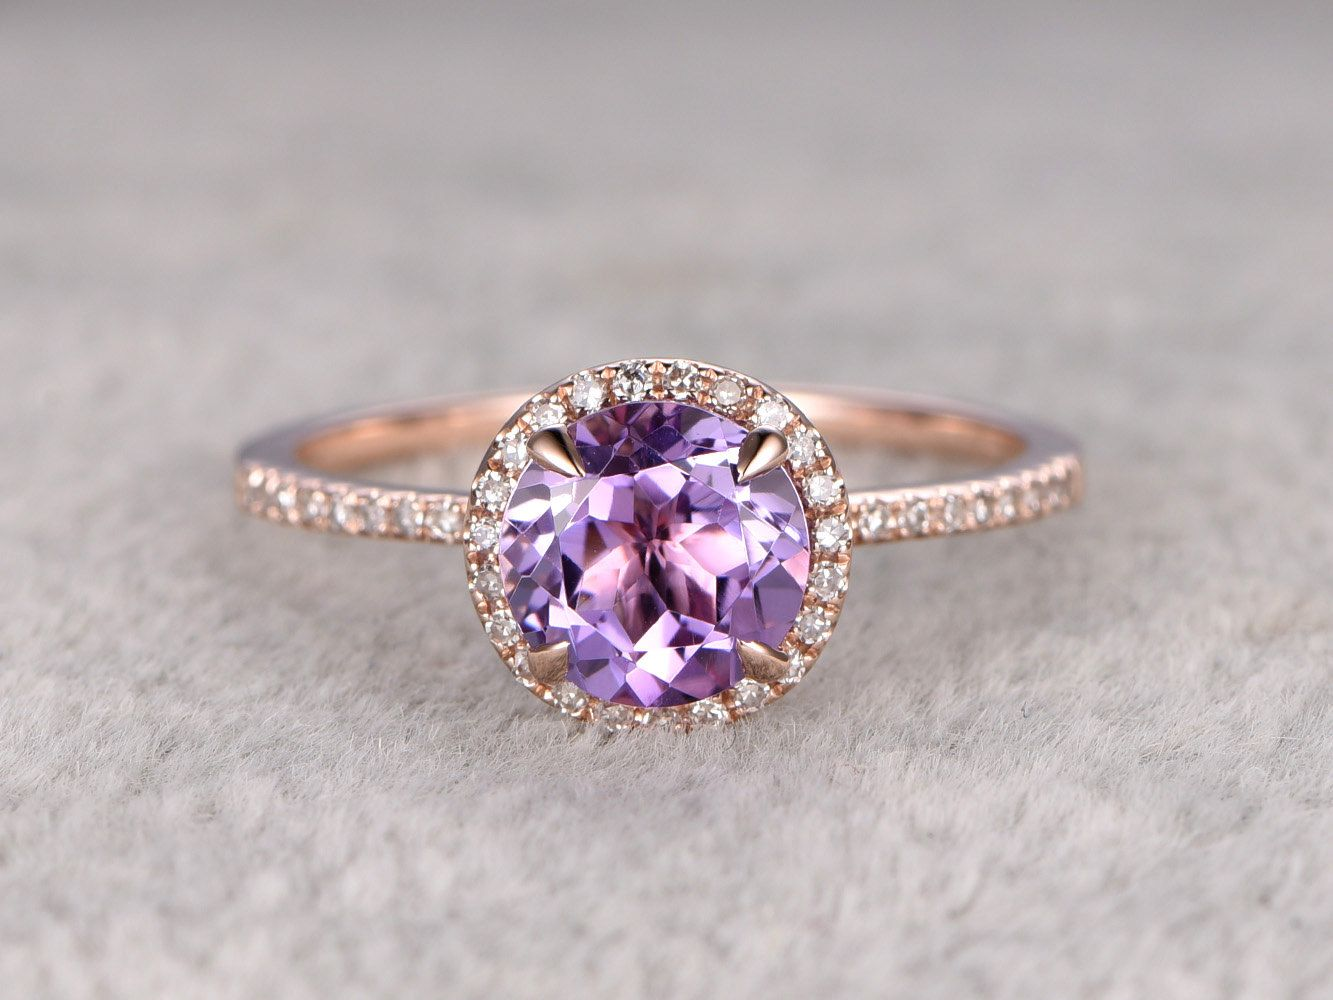 gift paved plated cubic zirconia wedding color from gem jewelry stone in for women bands item gold rings engagement purple ring luxury